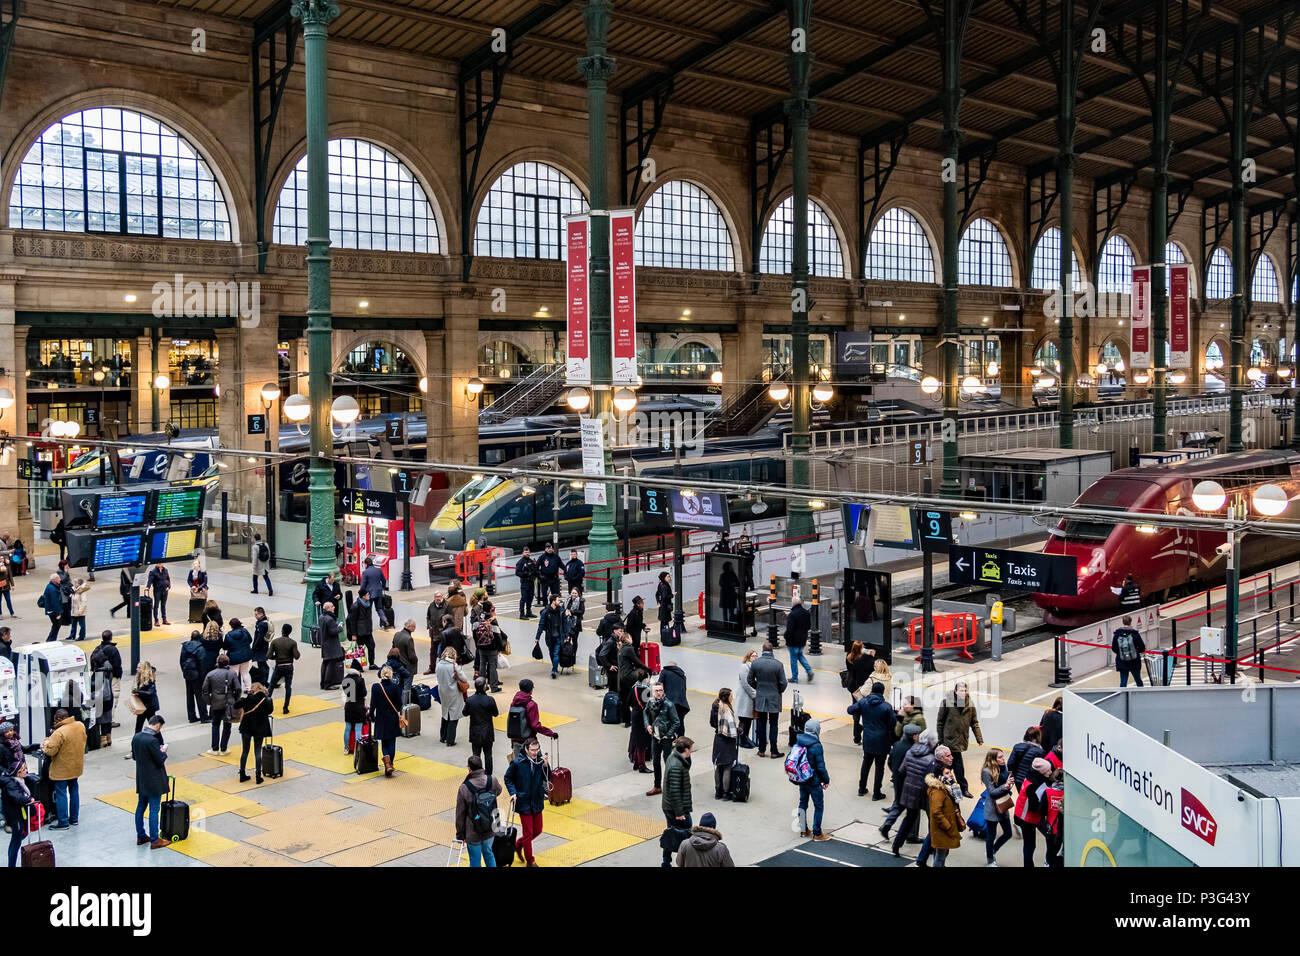 tgv railway station stock photos tgv railway station stock images alamy. Black Bedroom Furniture Sets. Home Design Ideas